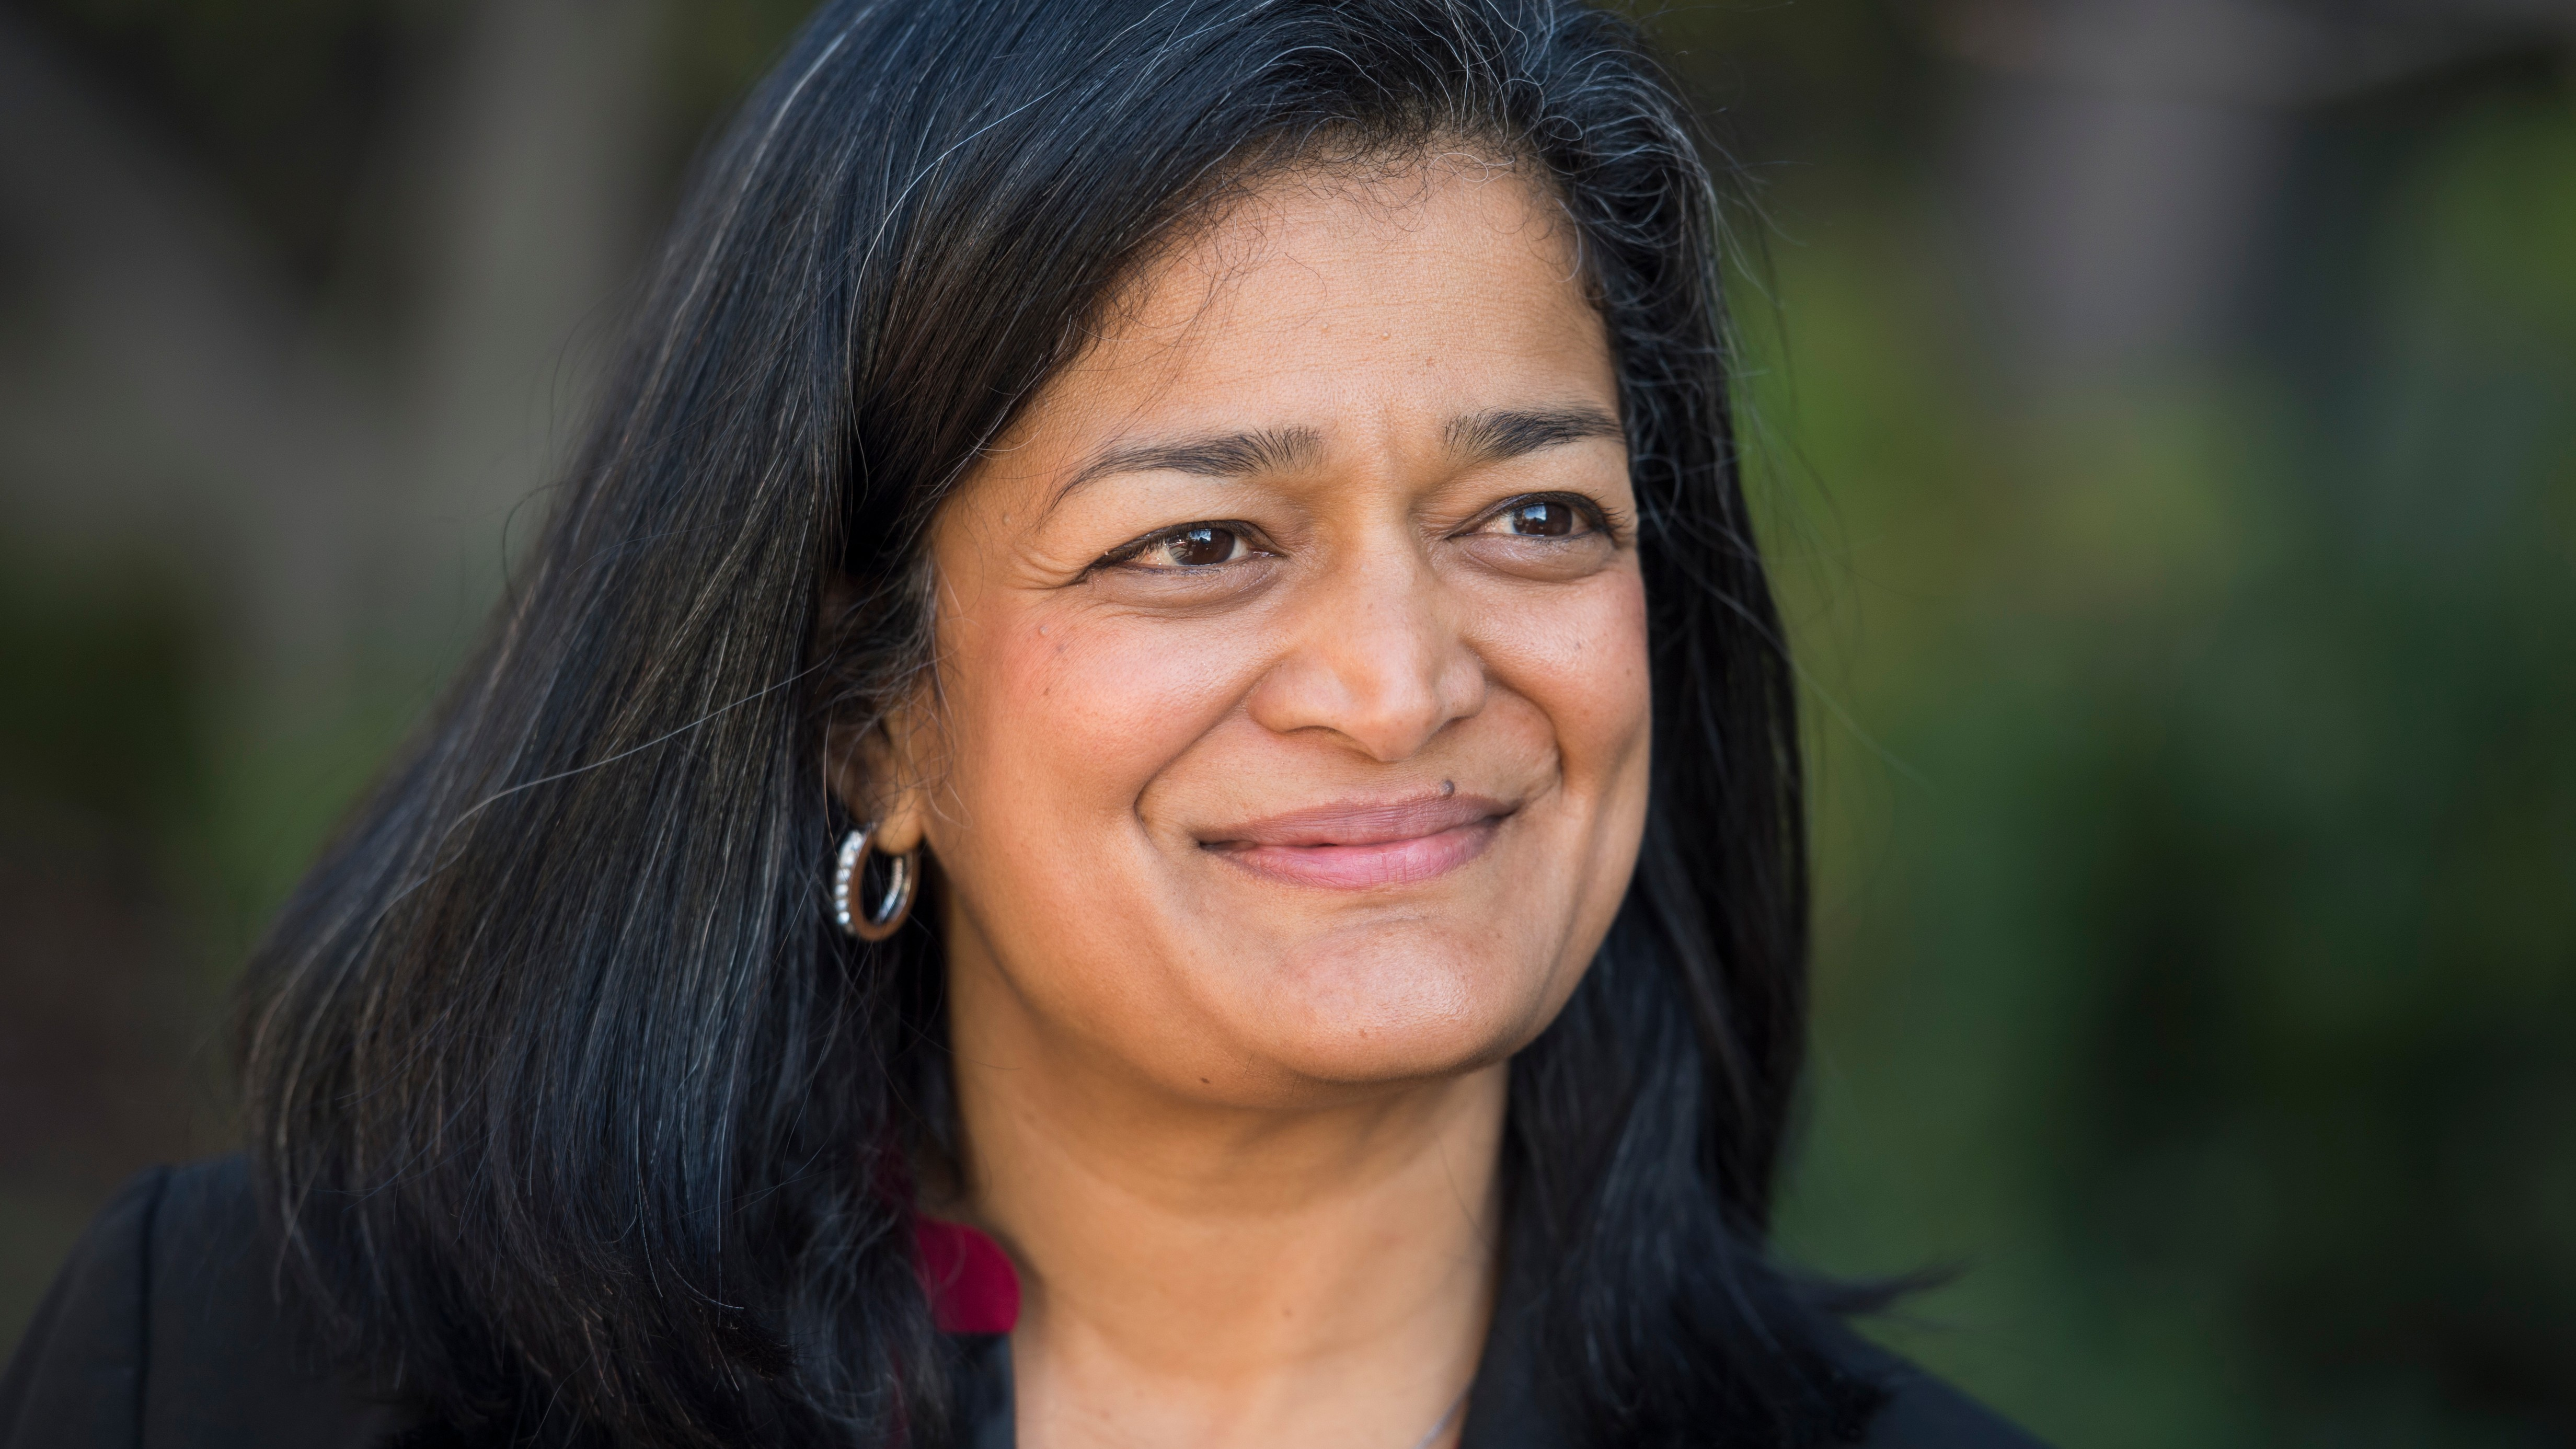 """""""I Could Not Tempt Fate Again"""": Pramila Jayapal Tells the Story of Her Abortion"""